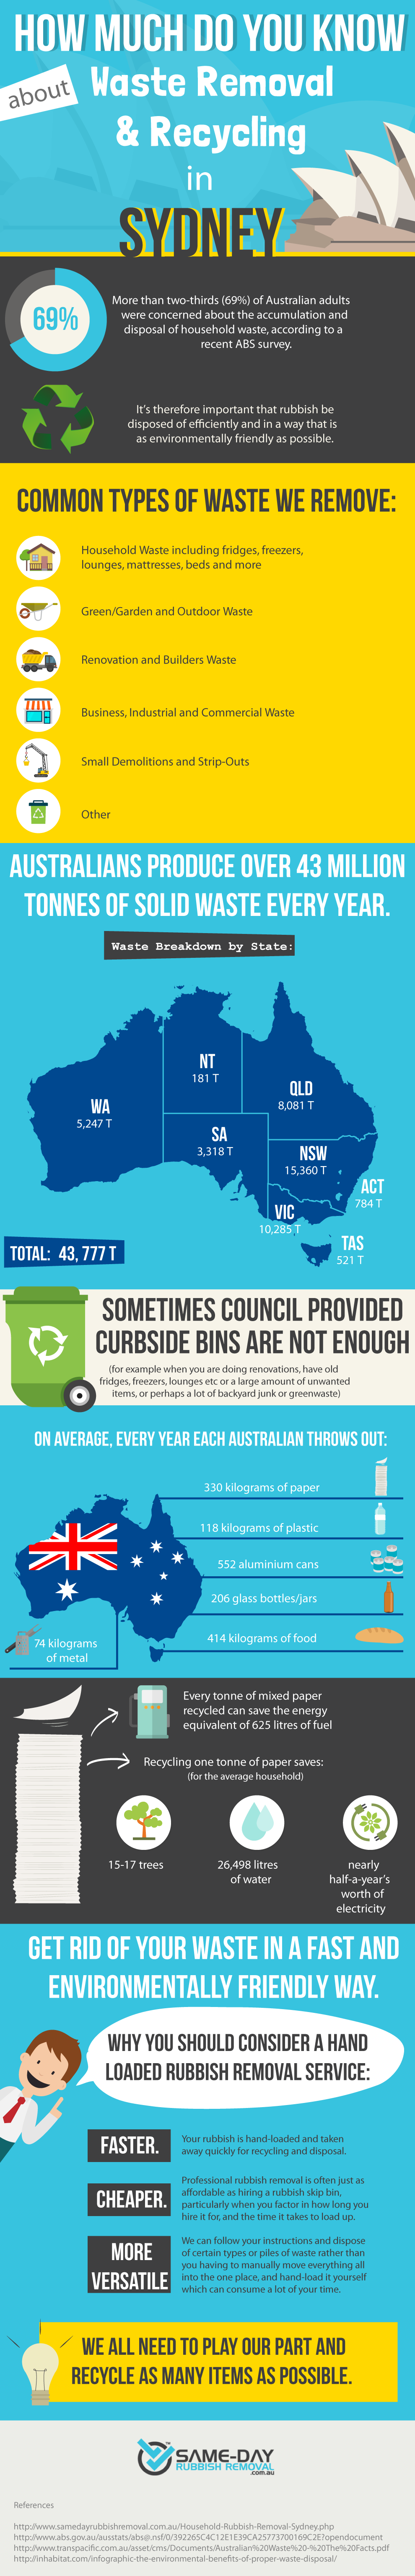 Rubbish Removal Sydney Infographic Statistics